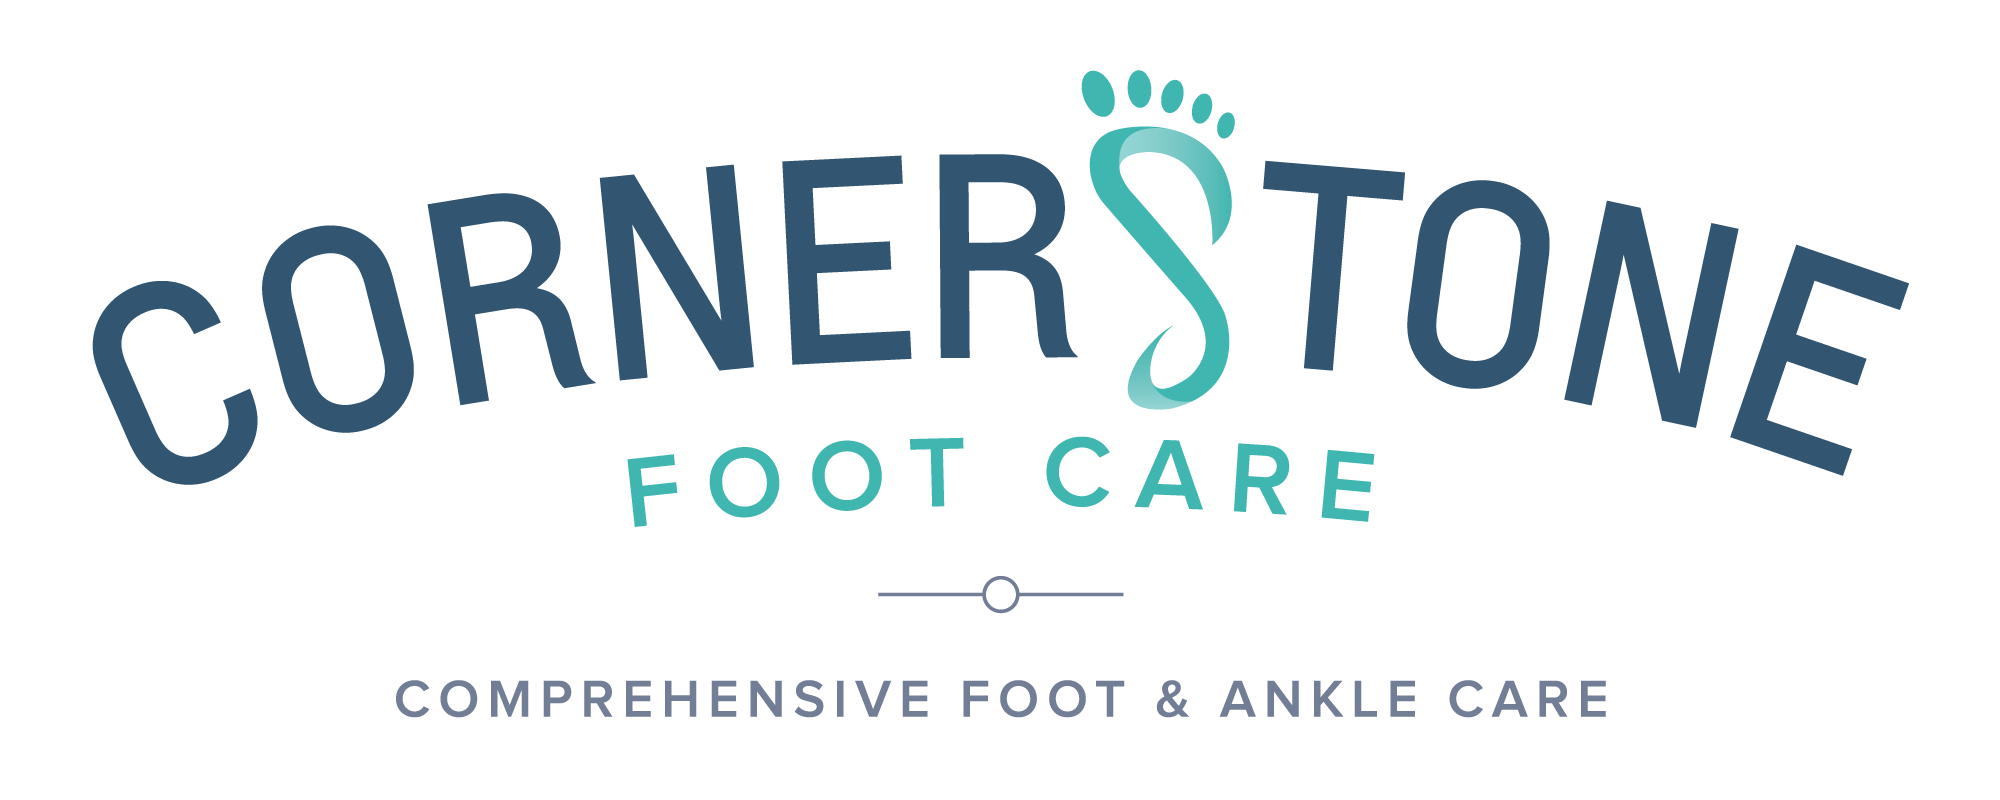 Cornerstone Foot Care